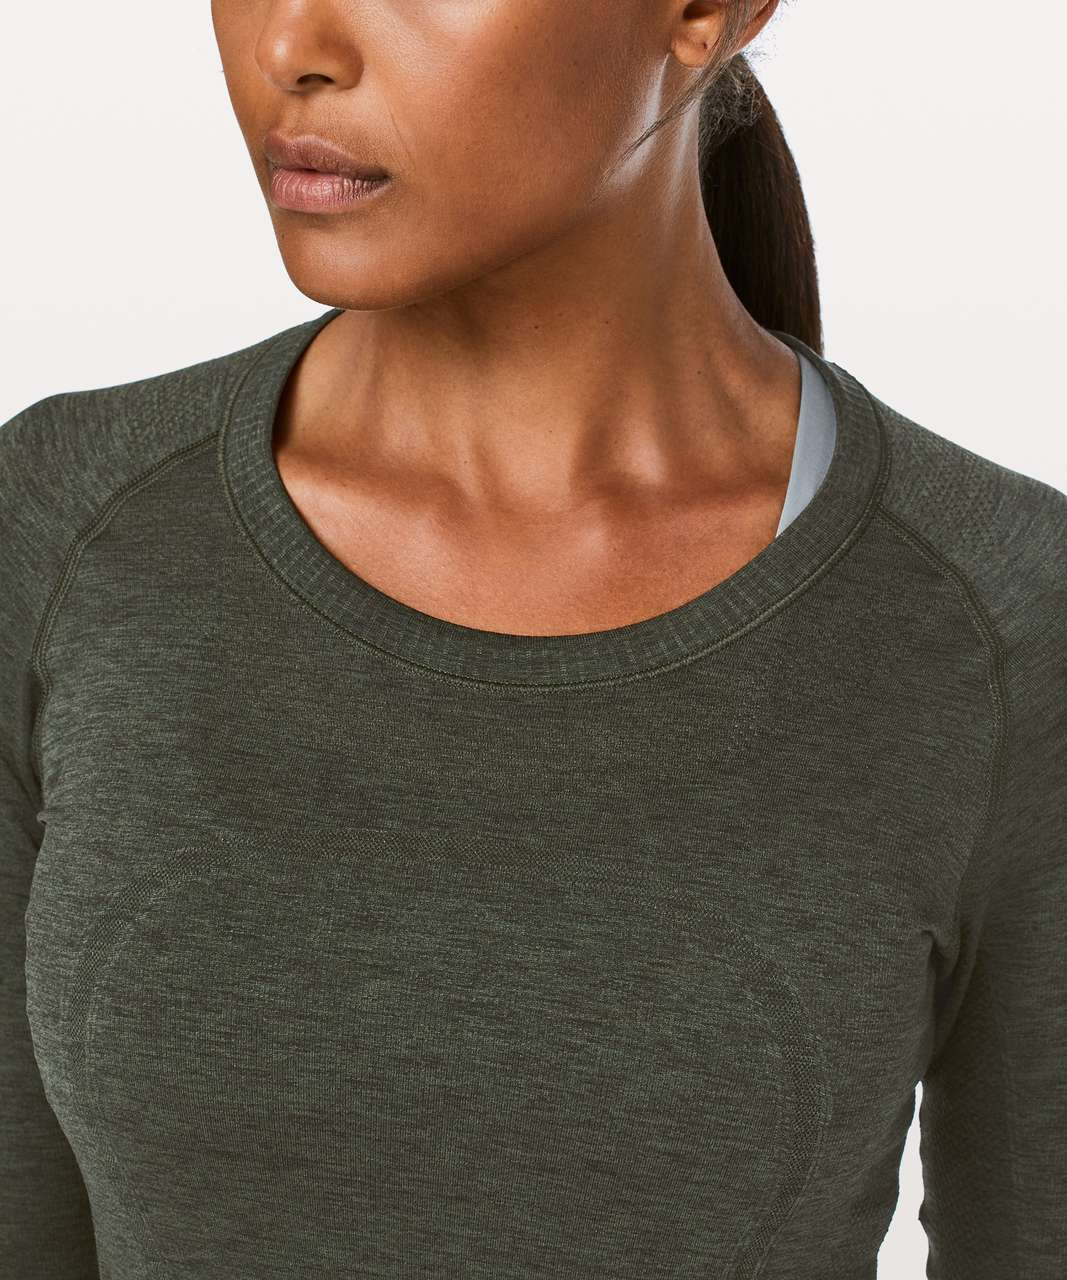 Lululemon Swiftly Tech Long Sleeve Crew - Camo Green / Black